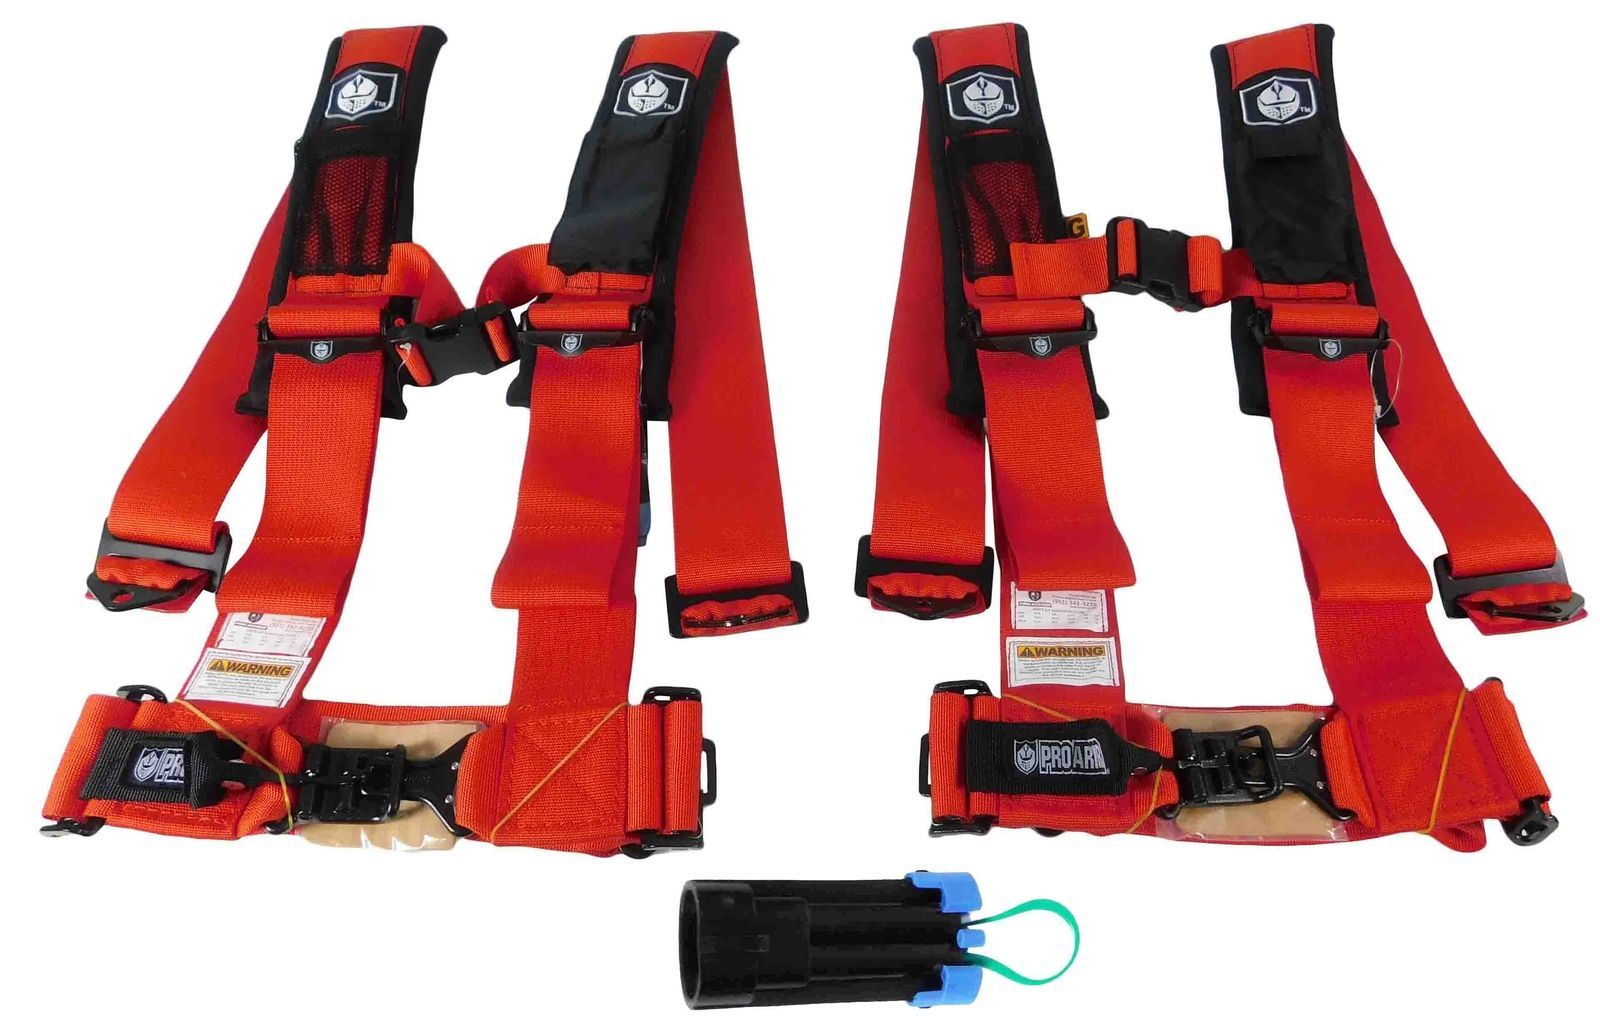 Pro-Armor-A114230RD-x2-P151100-4-Point-3inch-Harness-w-Override-Clip-Red-2-PACK-image-1